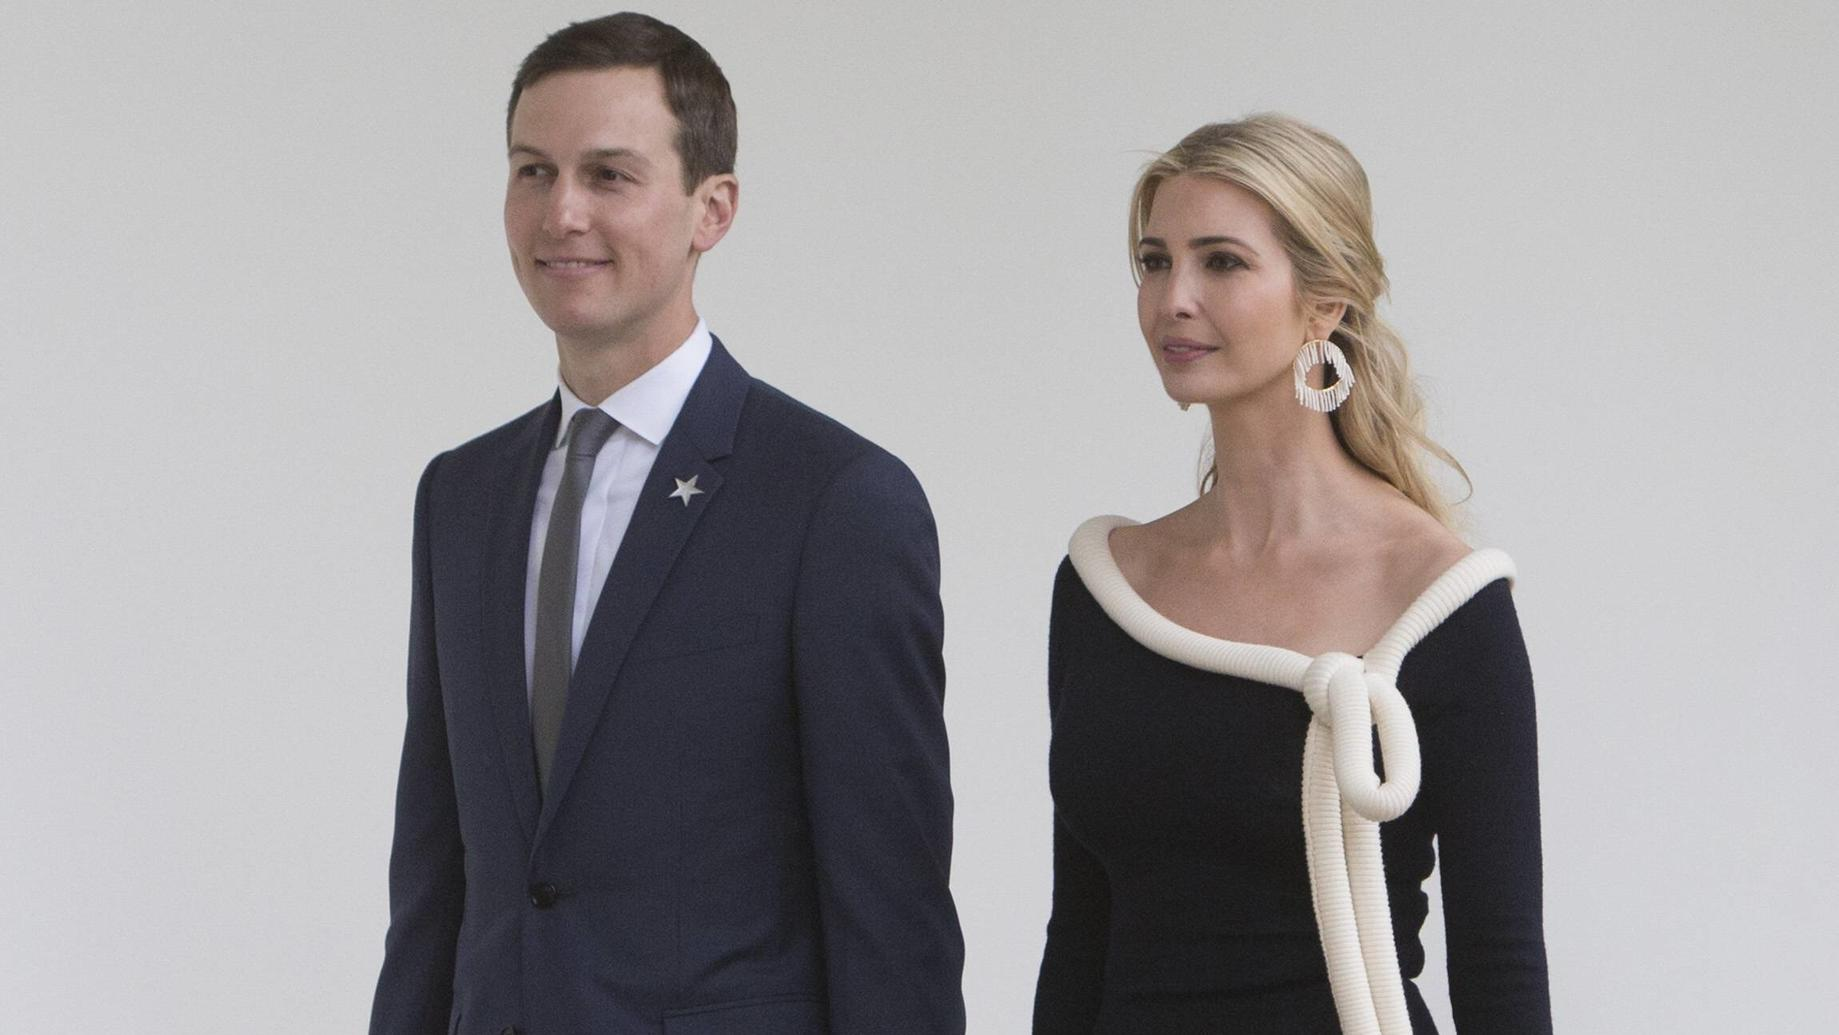 Presidential Advisors Jared Kushner and Ivanka Trump walk the Colonnade at The White House while attending a state visit by French President Emmanuel Macron to Washington, DC, April 24, 2018. PUBLICATIONxINxGERxSUIxAUTxONLY Copyright: x©2018xConsolid